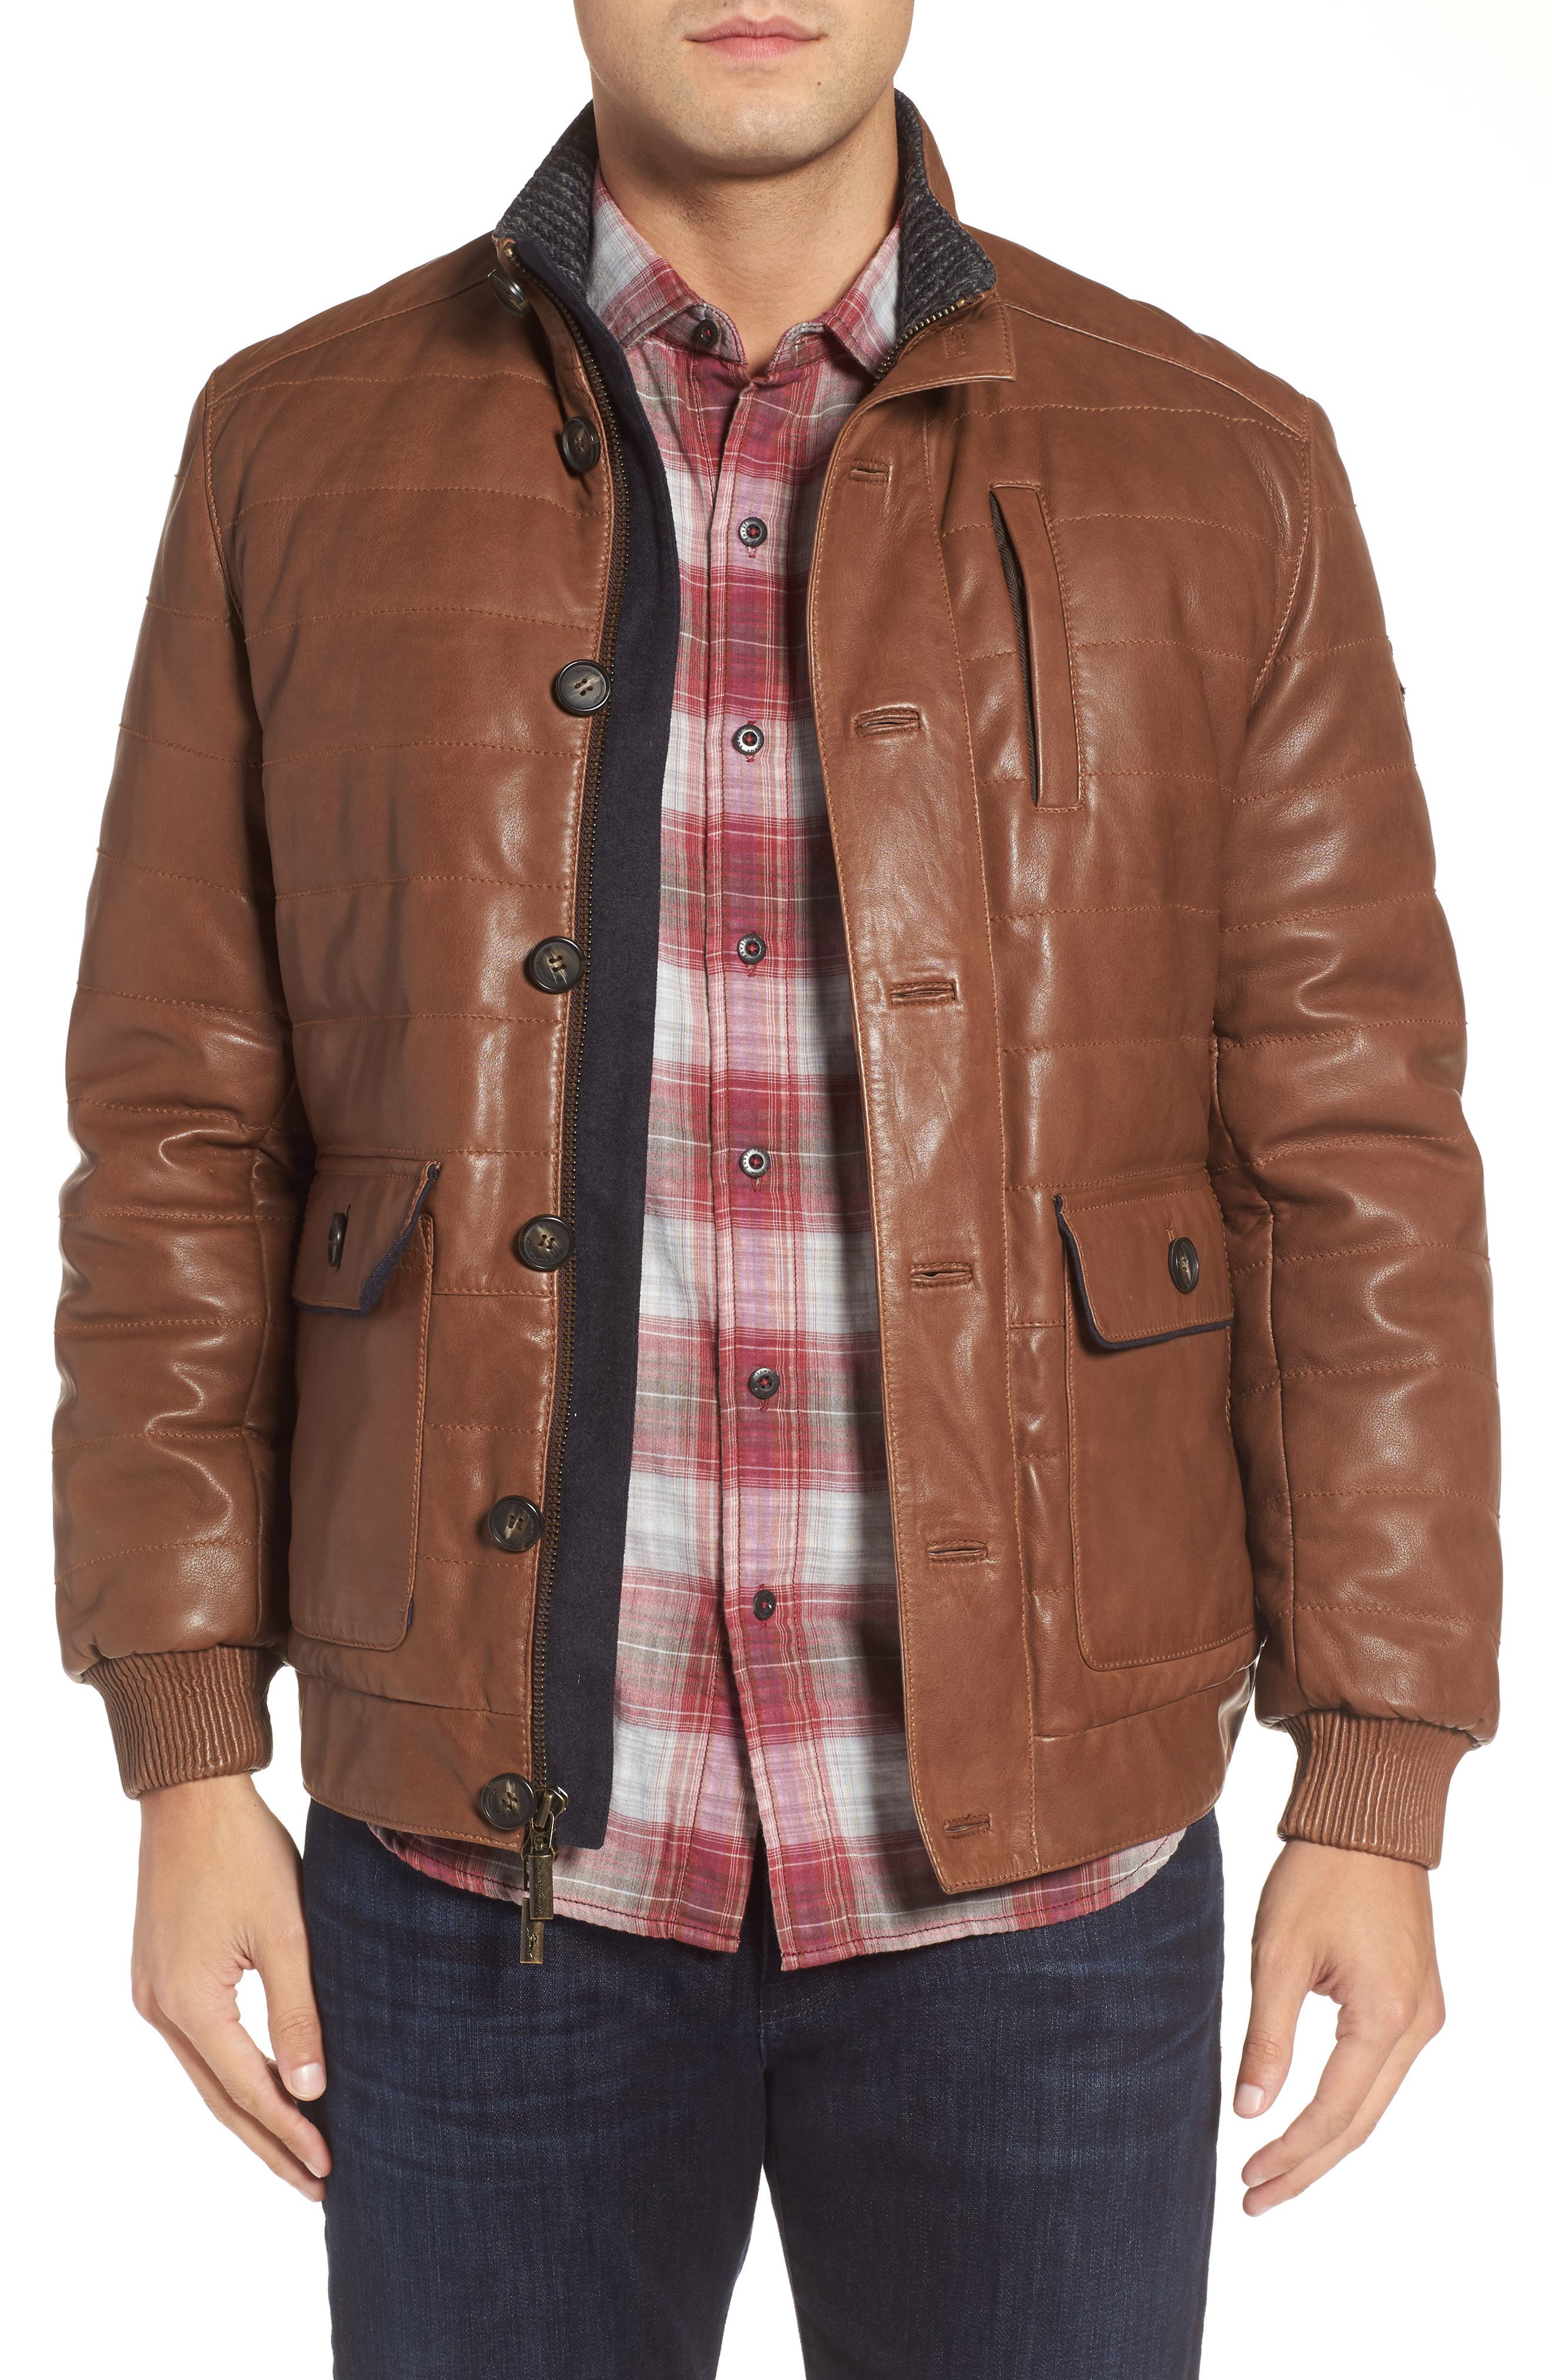 Snowside Leather Bomber Jacket,                         Main,                         color, 200